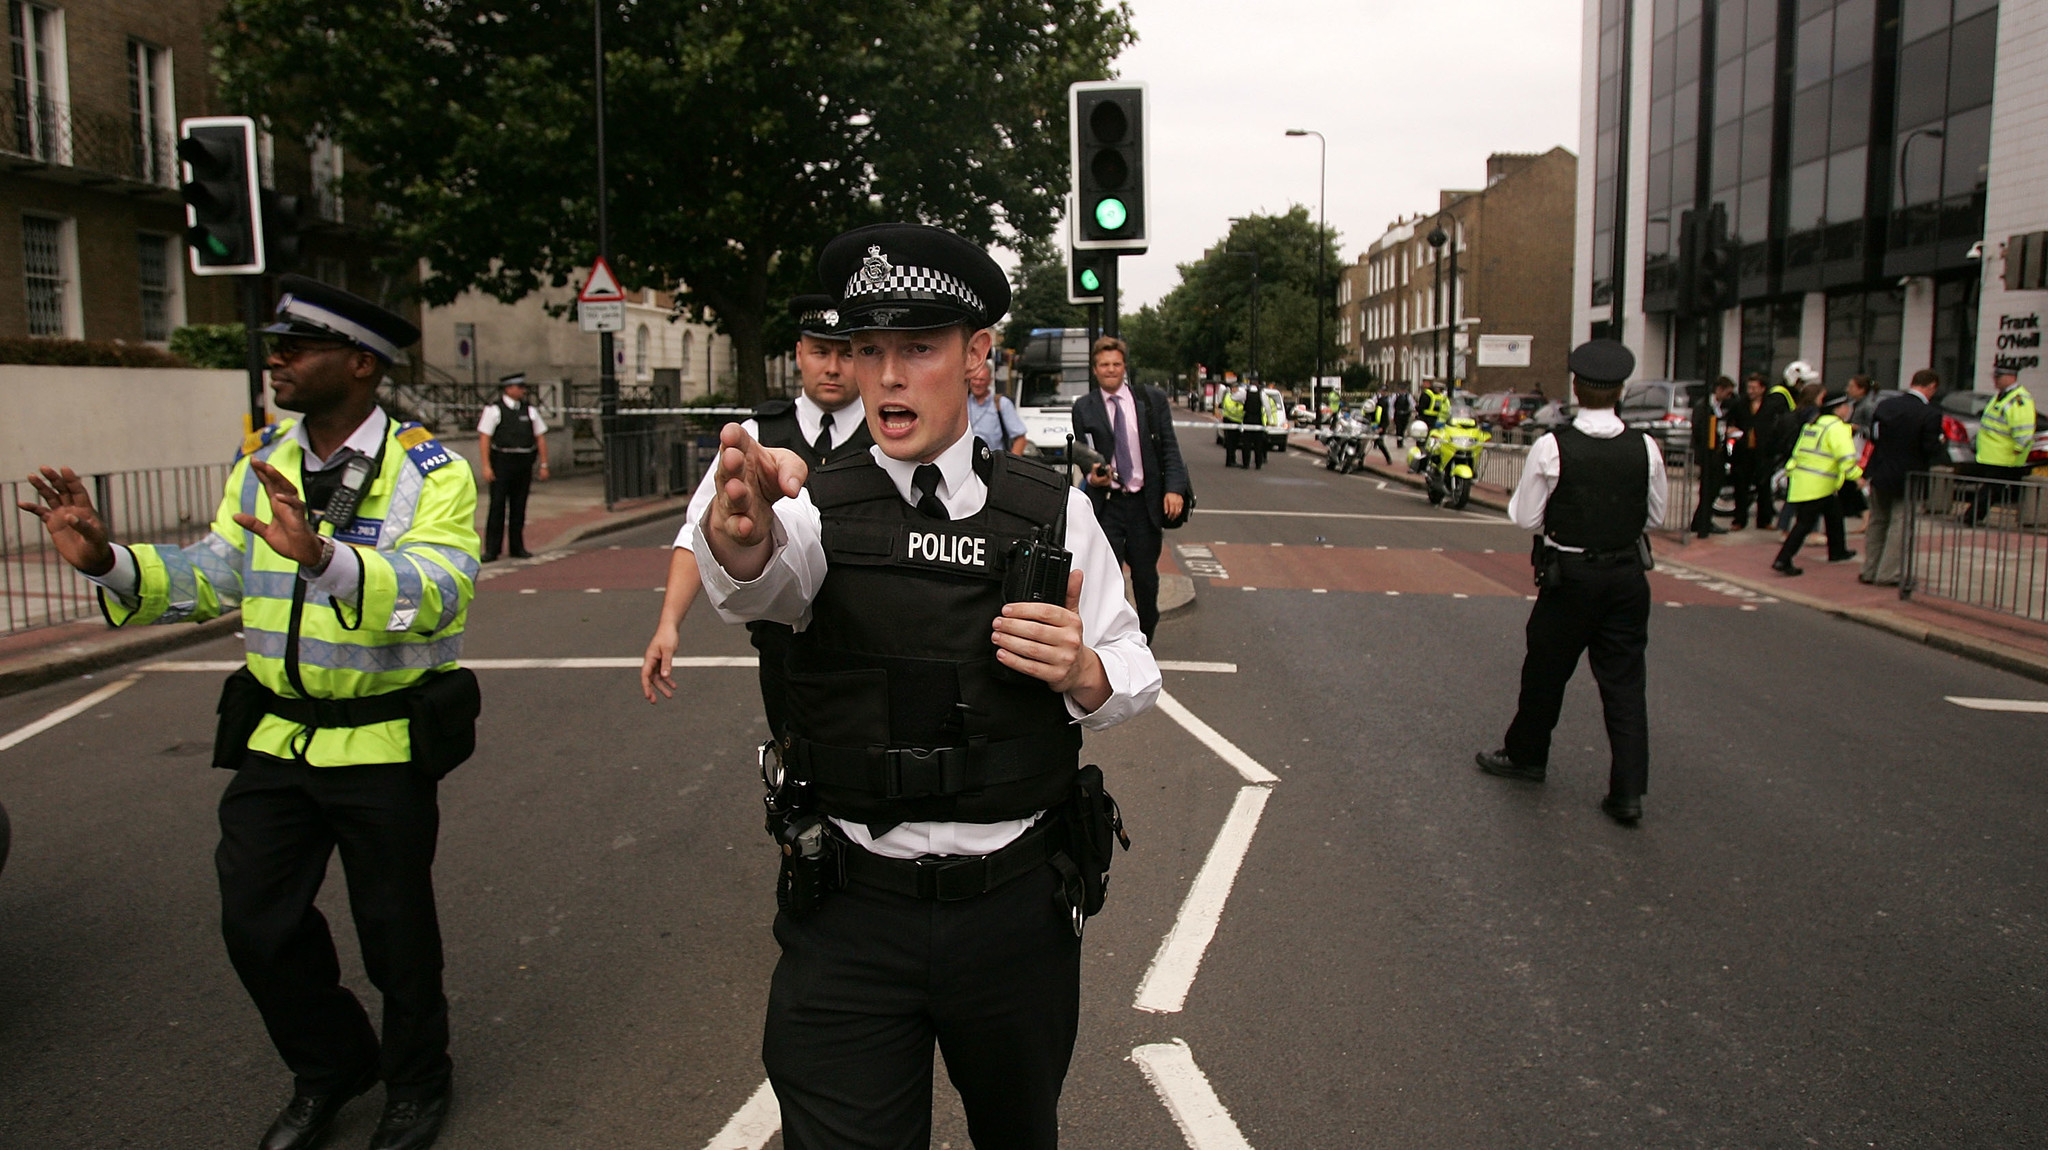 Police and Emergency services are seen outside the Oval Underground Station, one of three stations targeted with bombs on July 21, 2005 in London, England.